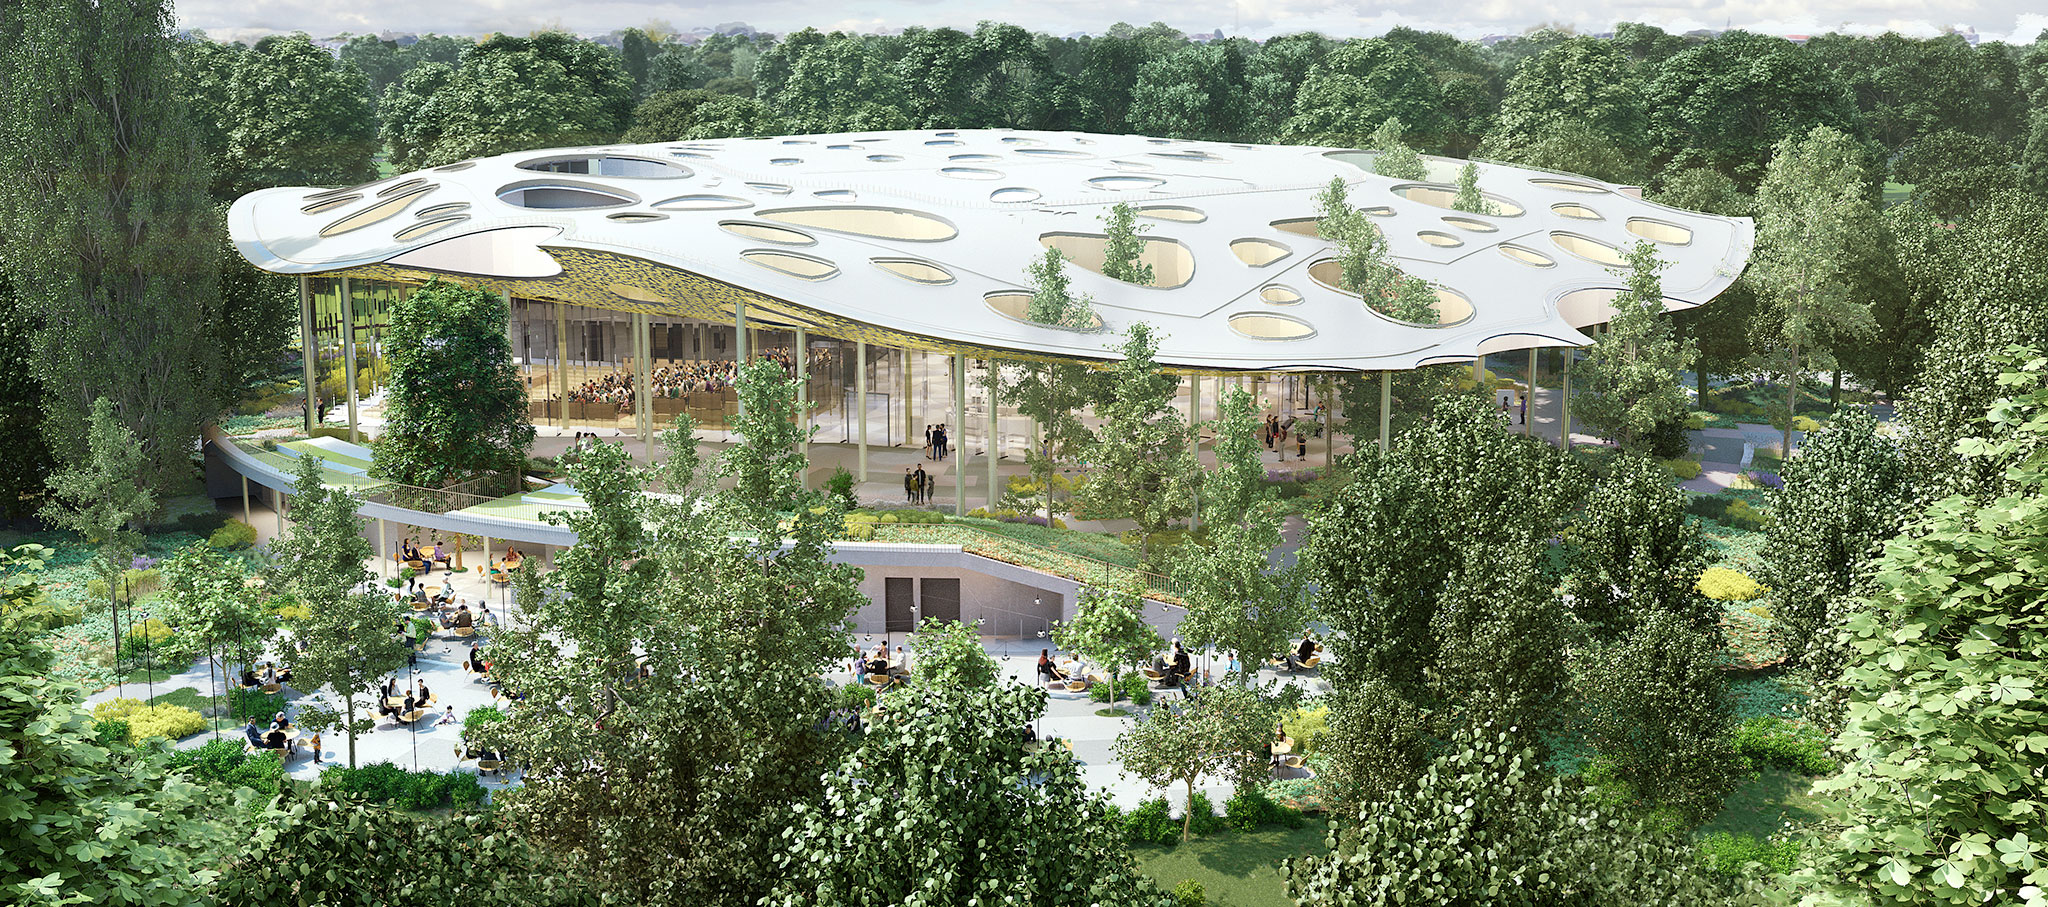 New renderings, House of Hungarian Music by Sou Fujimoto. Imgae courtesy of House of Hungarian Music